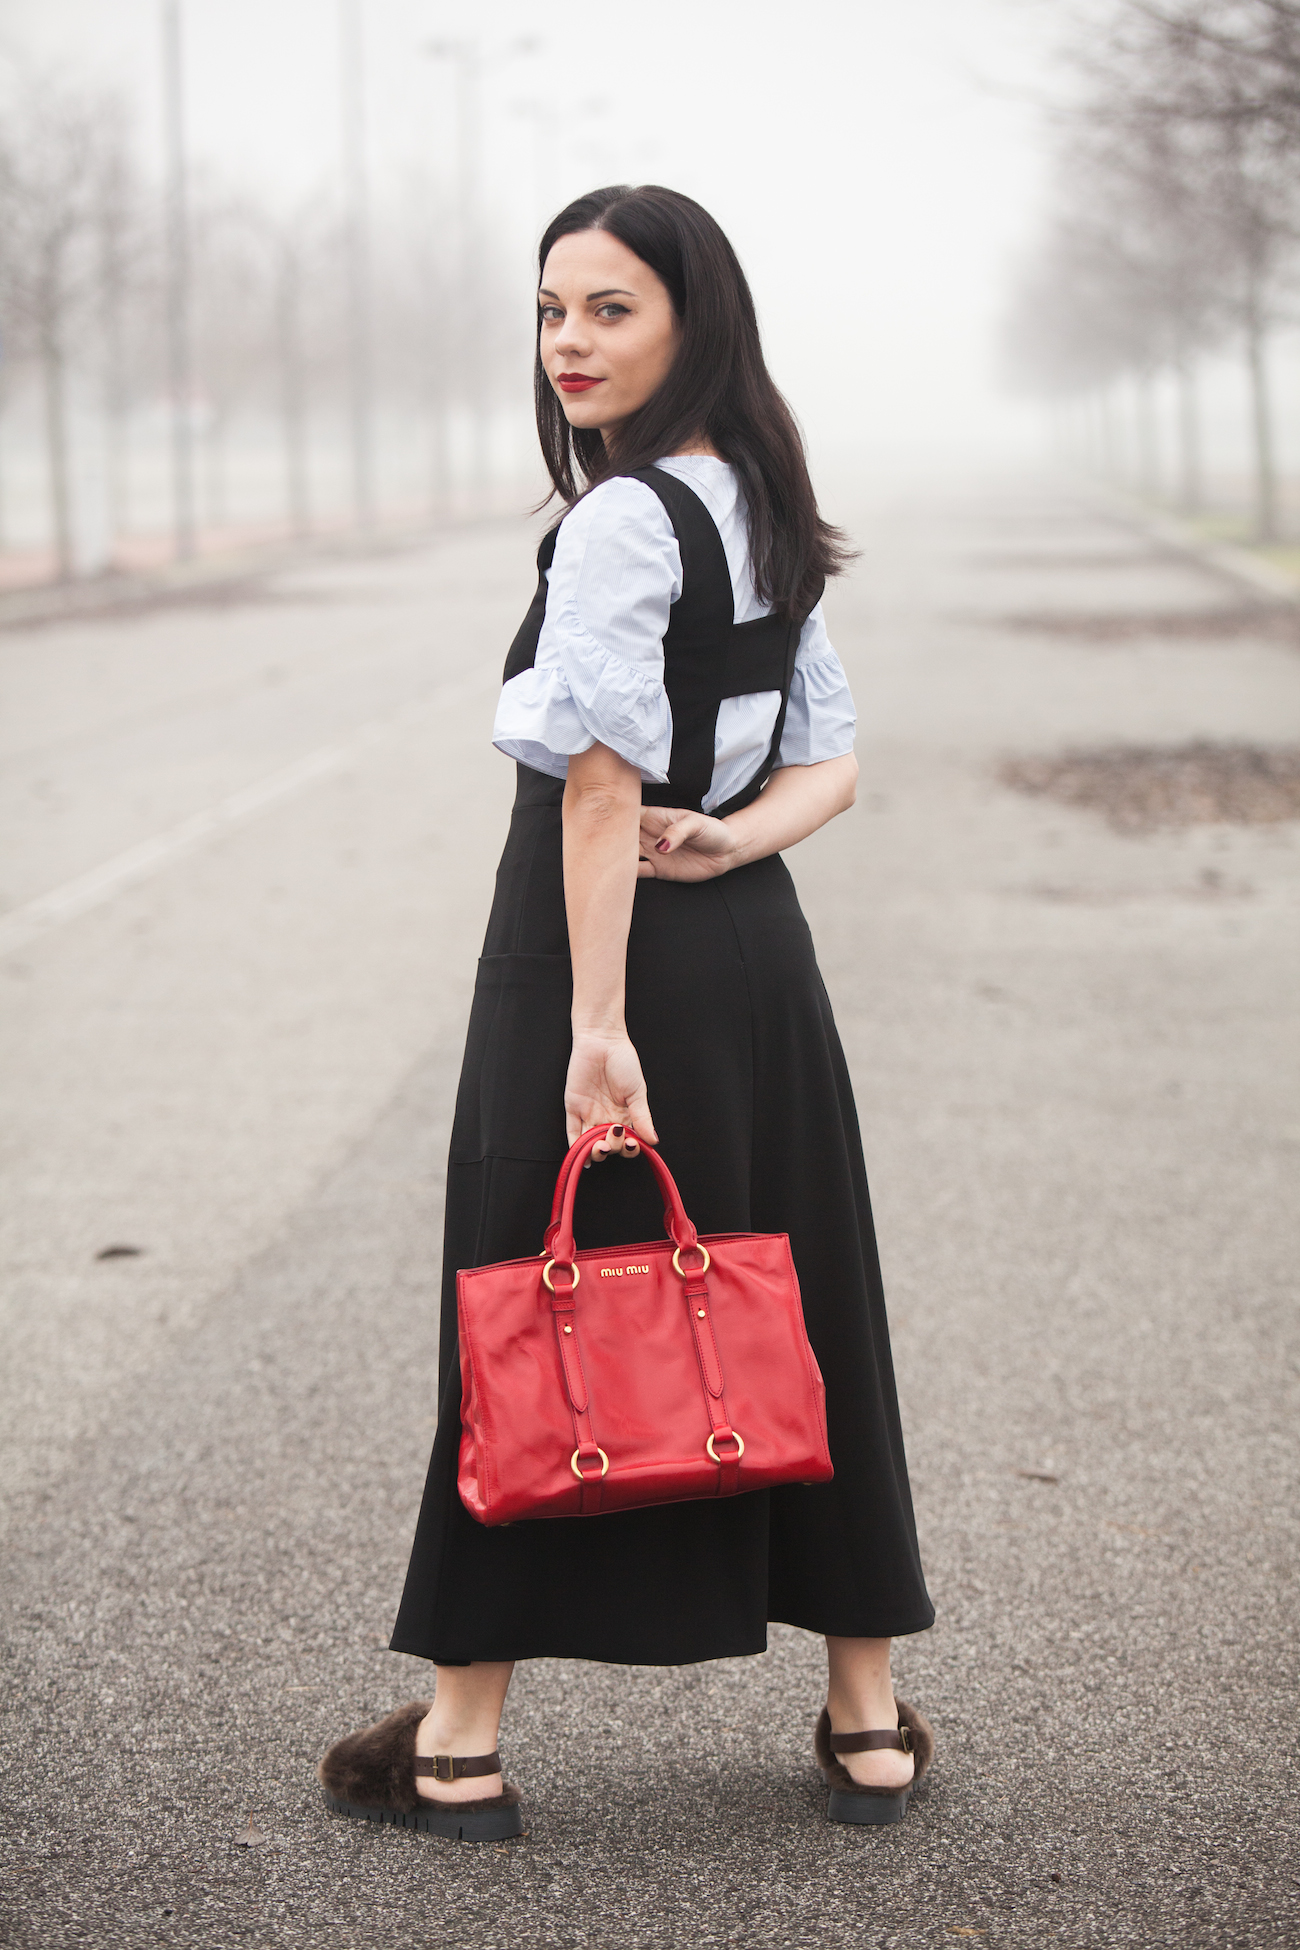 elena schiavon fashion blogger